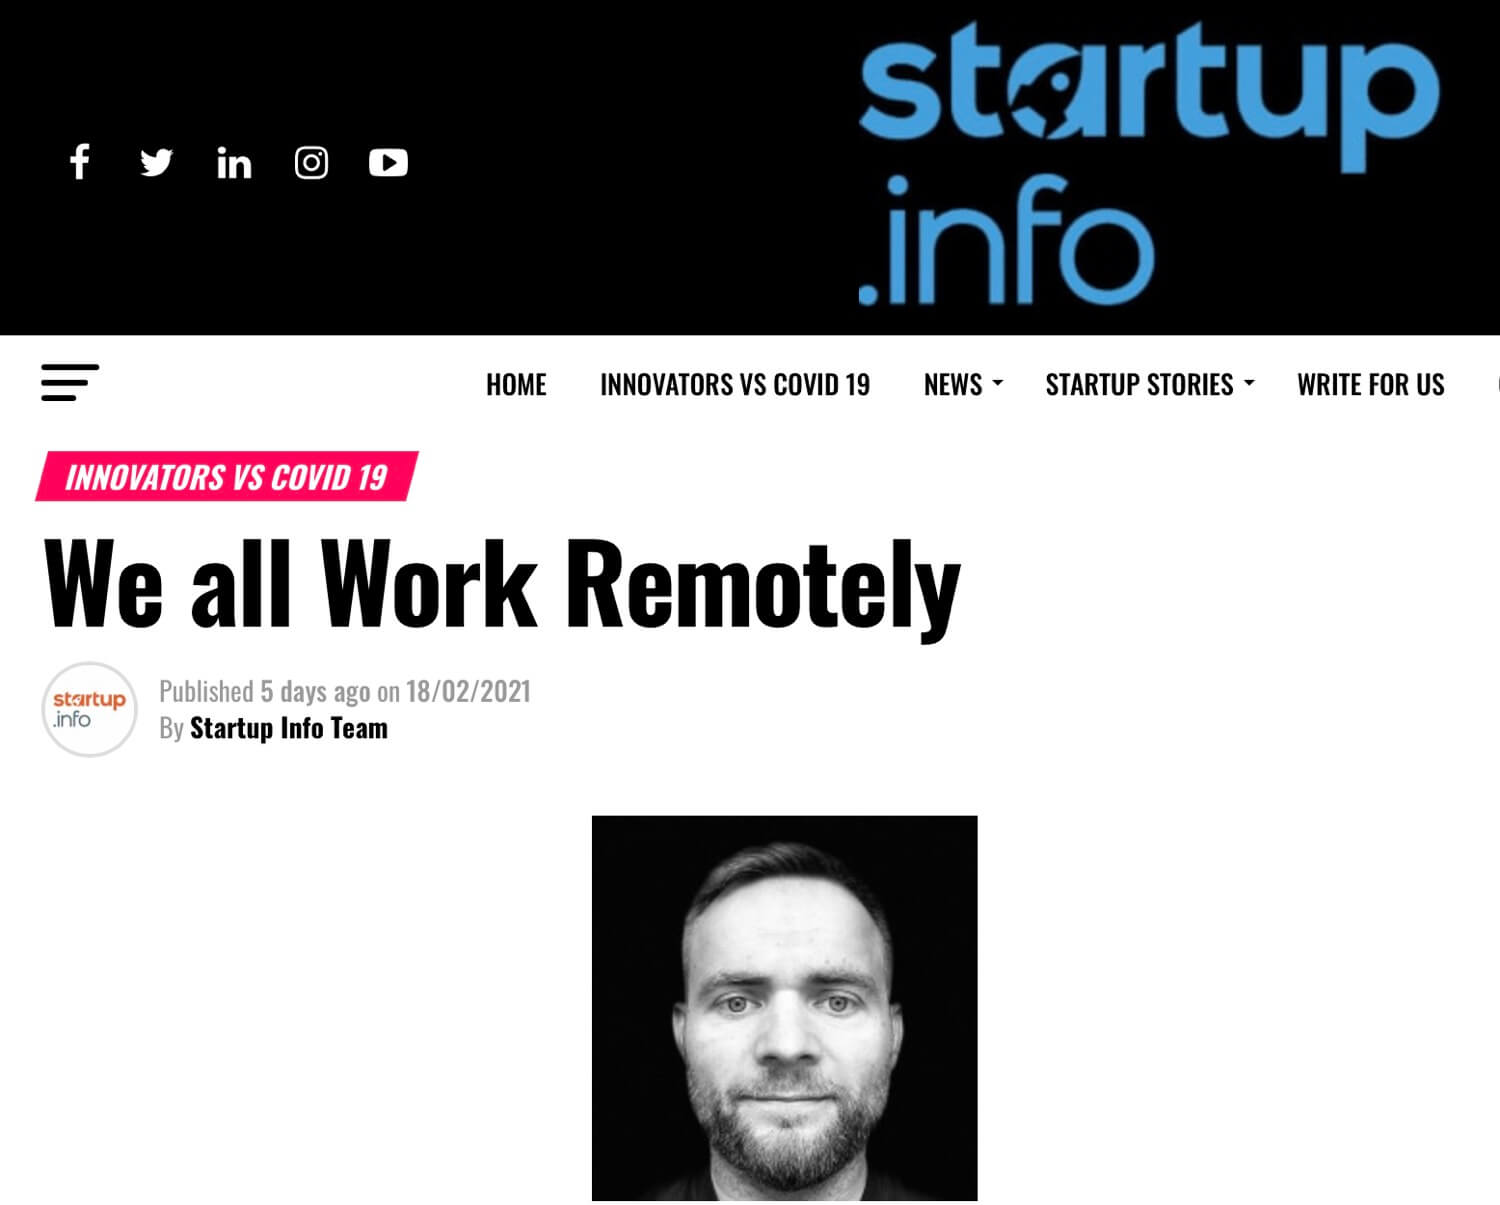 On Startup Info - how we all work remotely